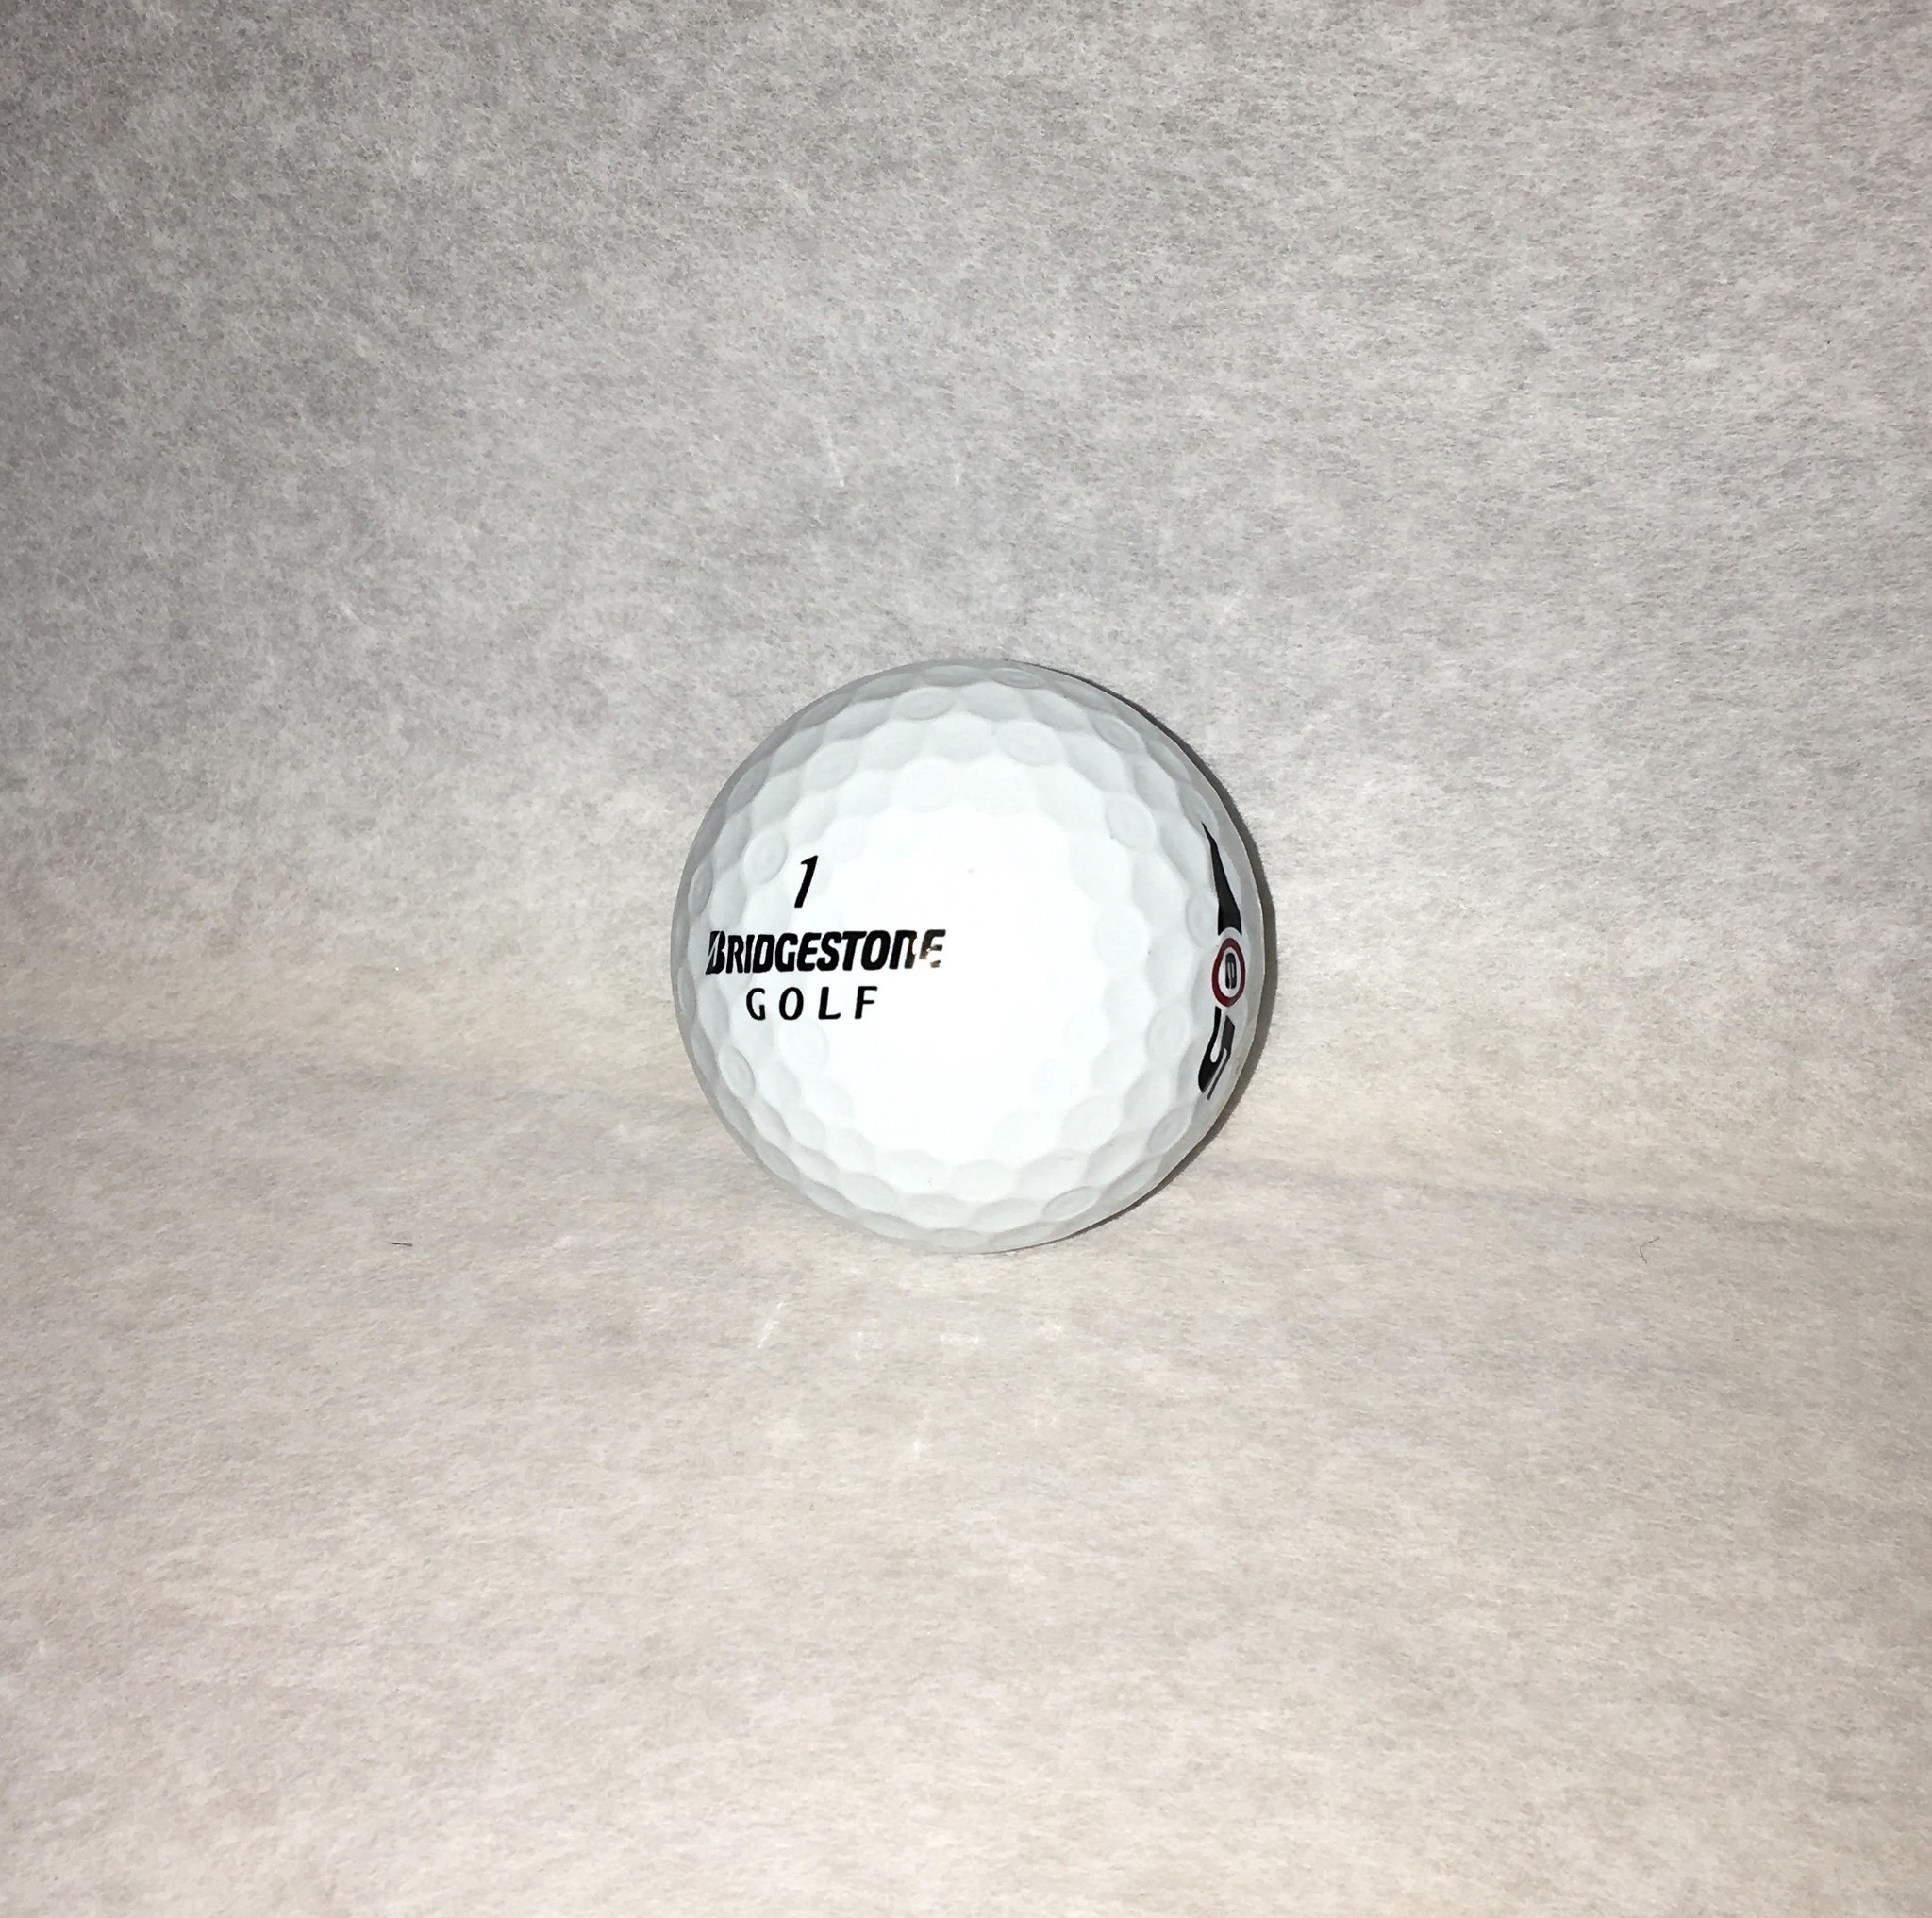 Bridgestone Golf Ball